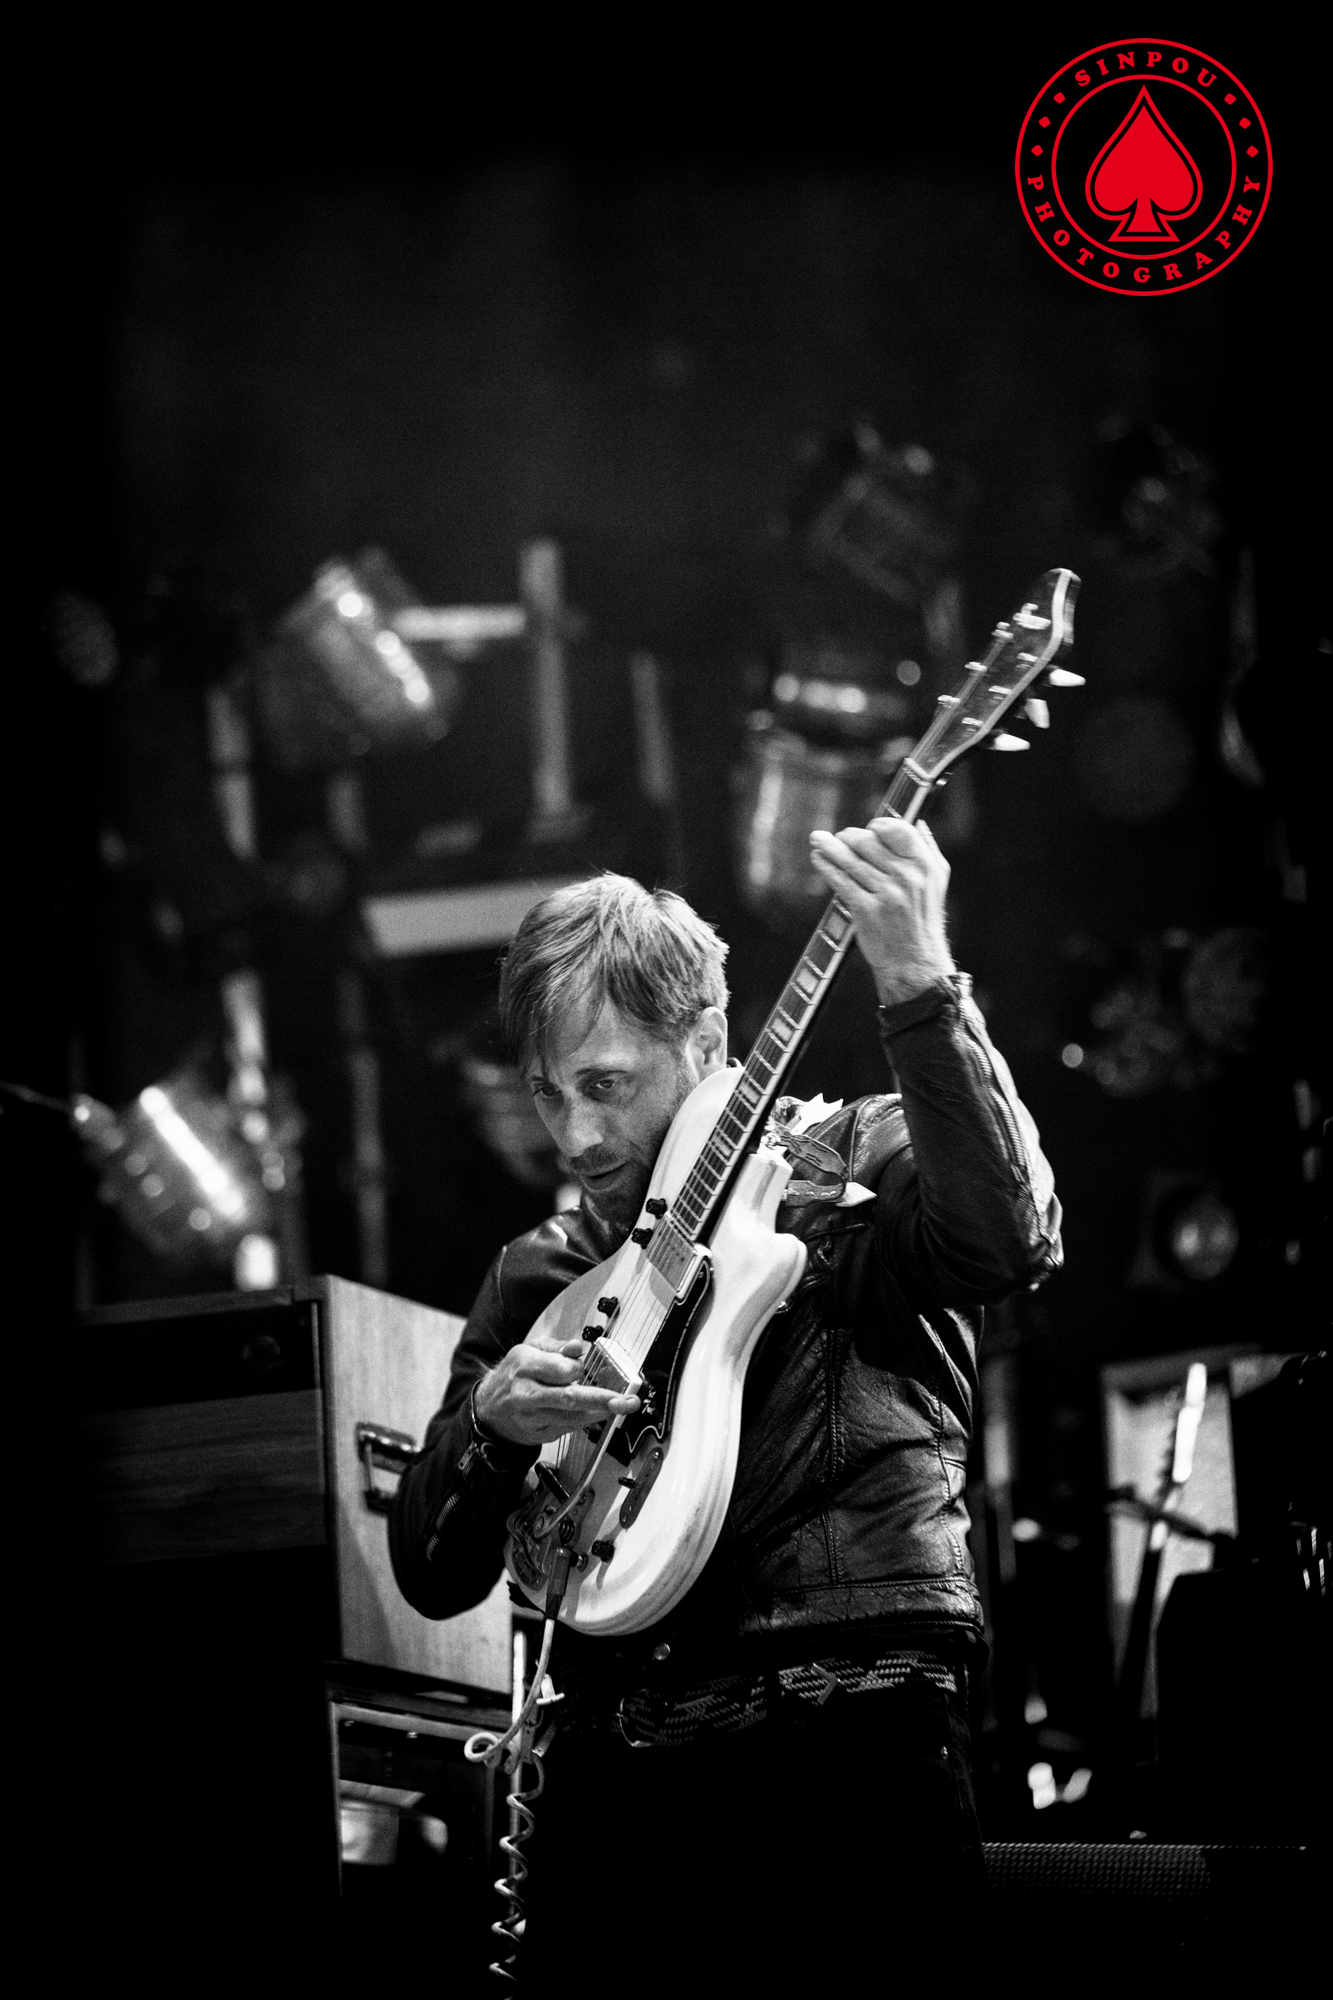 The Black Keys - Dan Auerbach